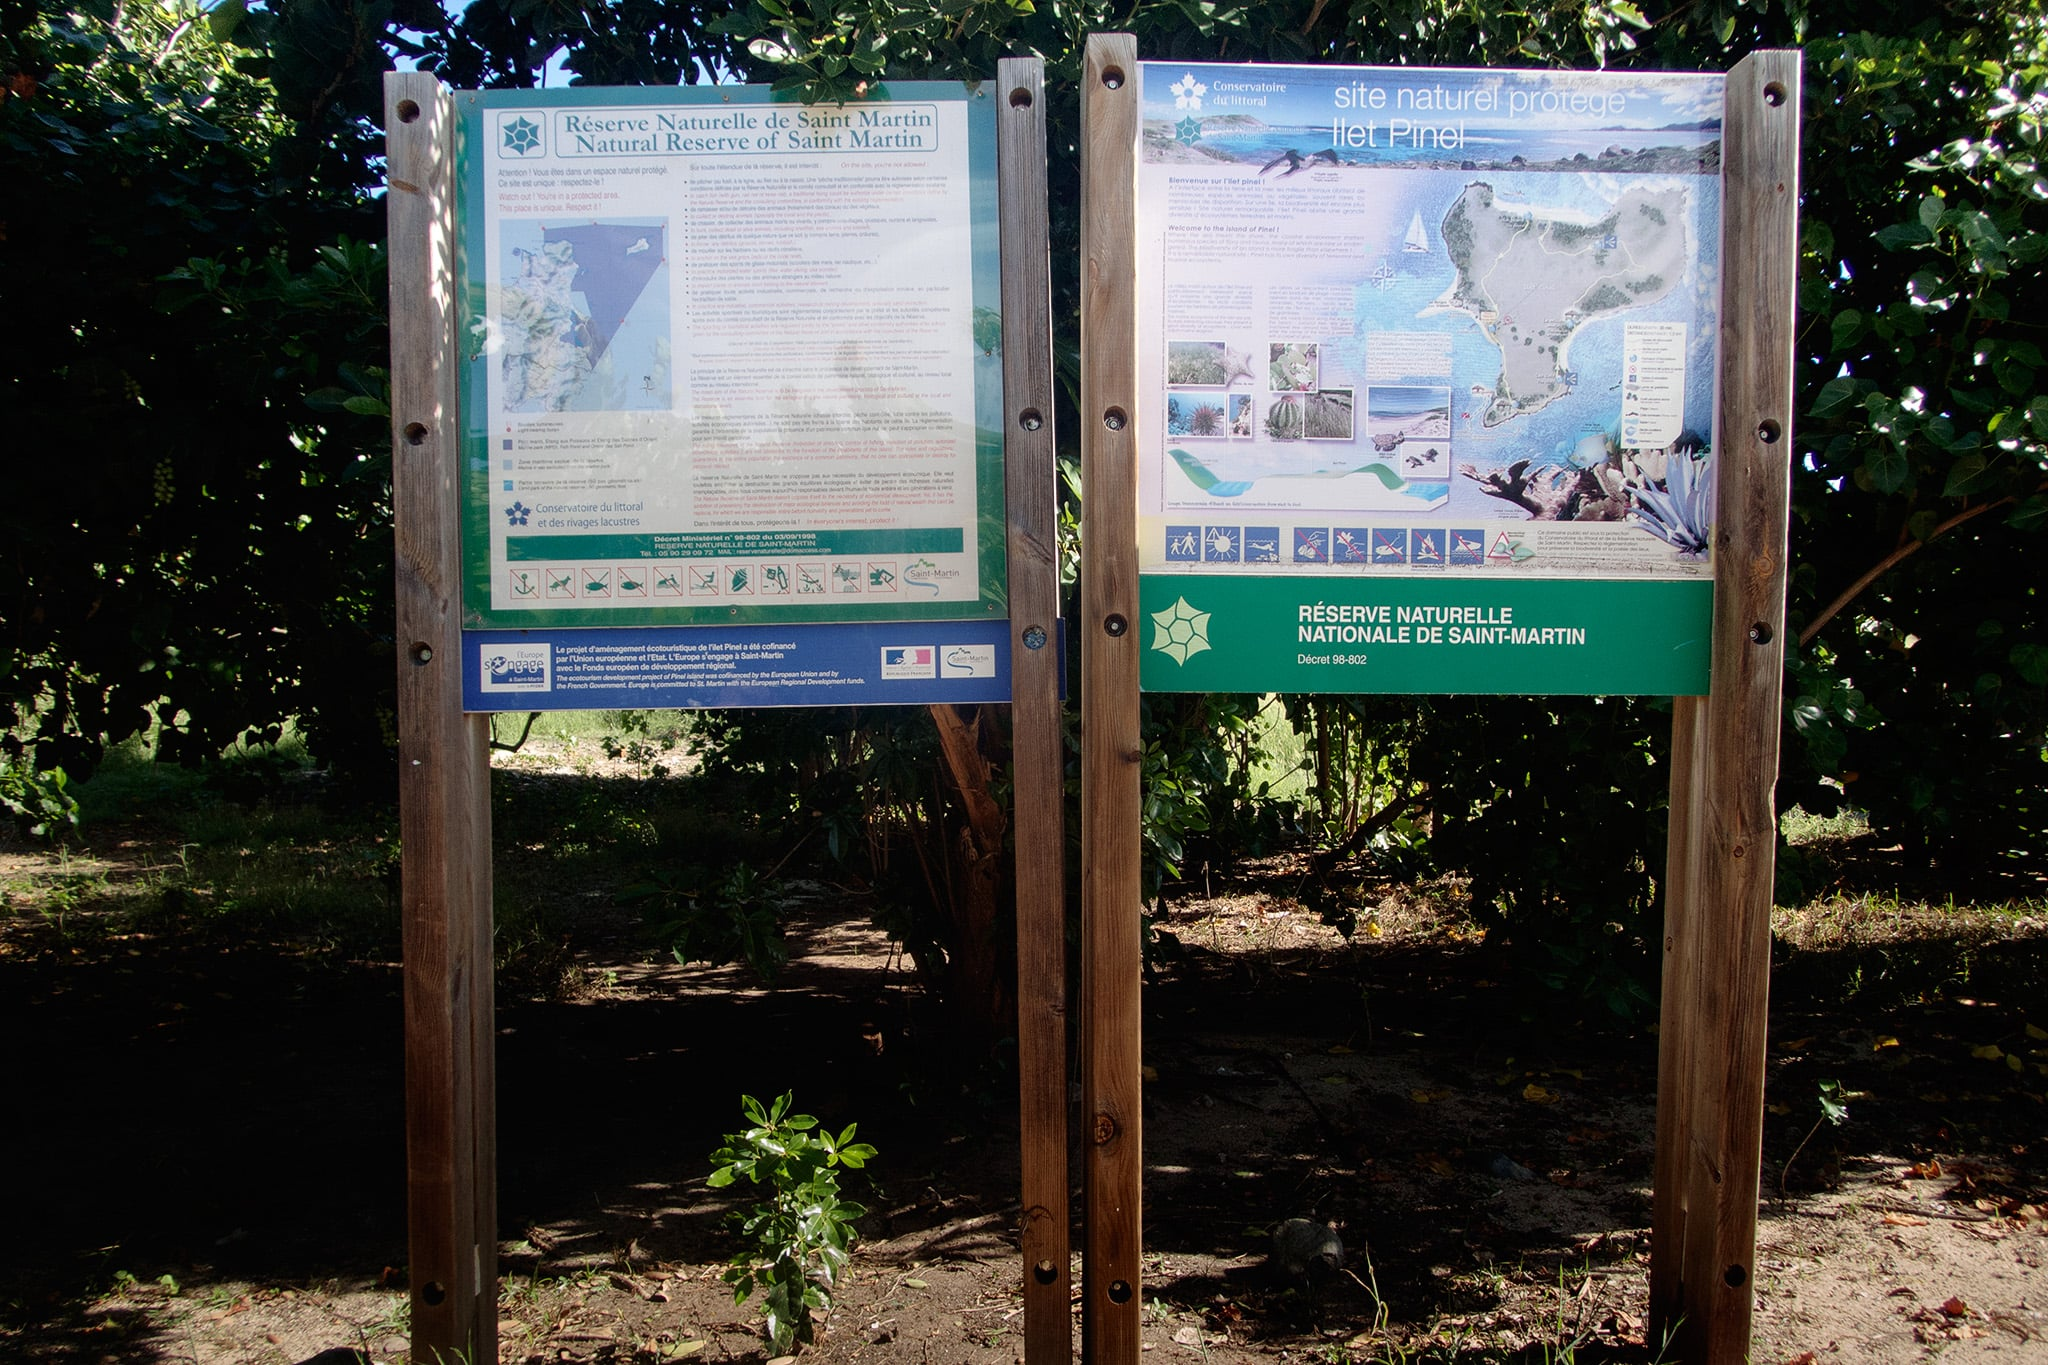 A sign near the ferry dock shows the short trail around the islet.